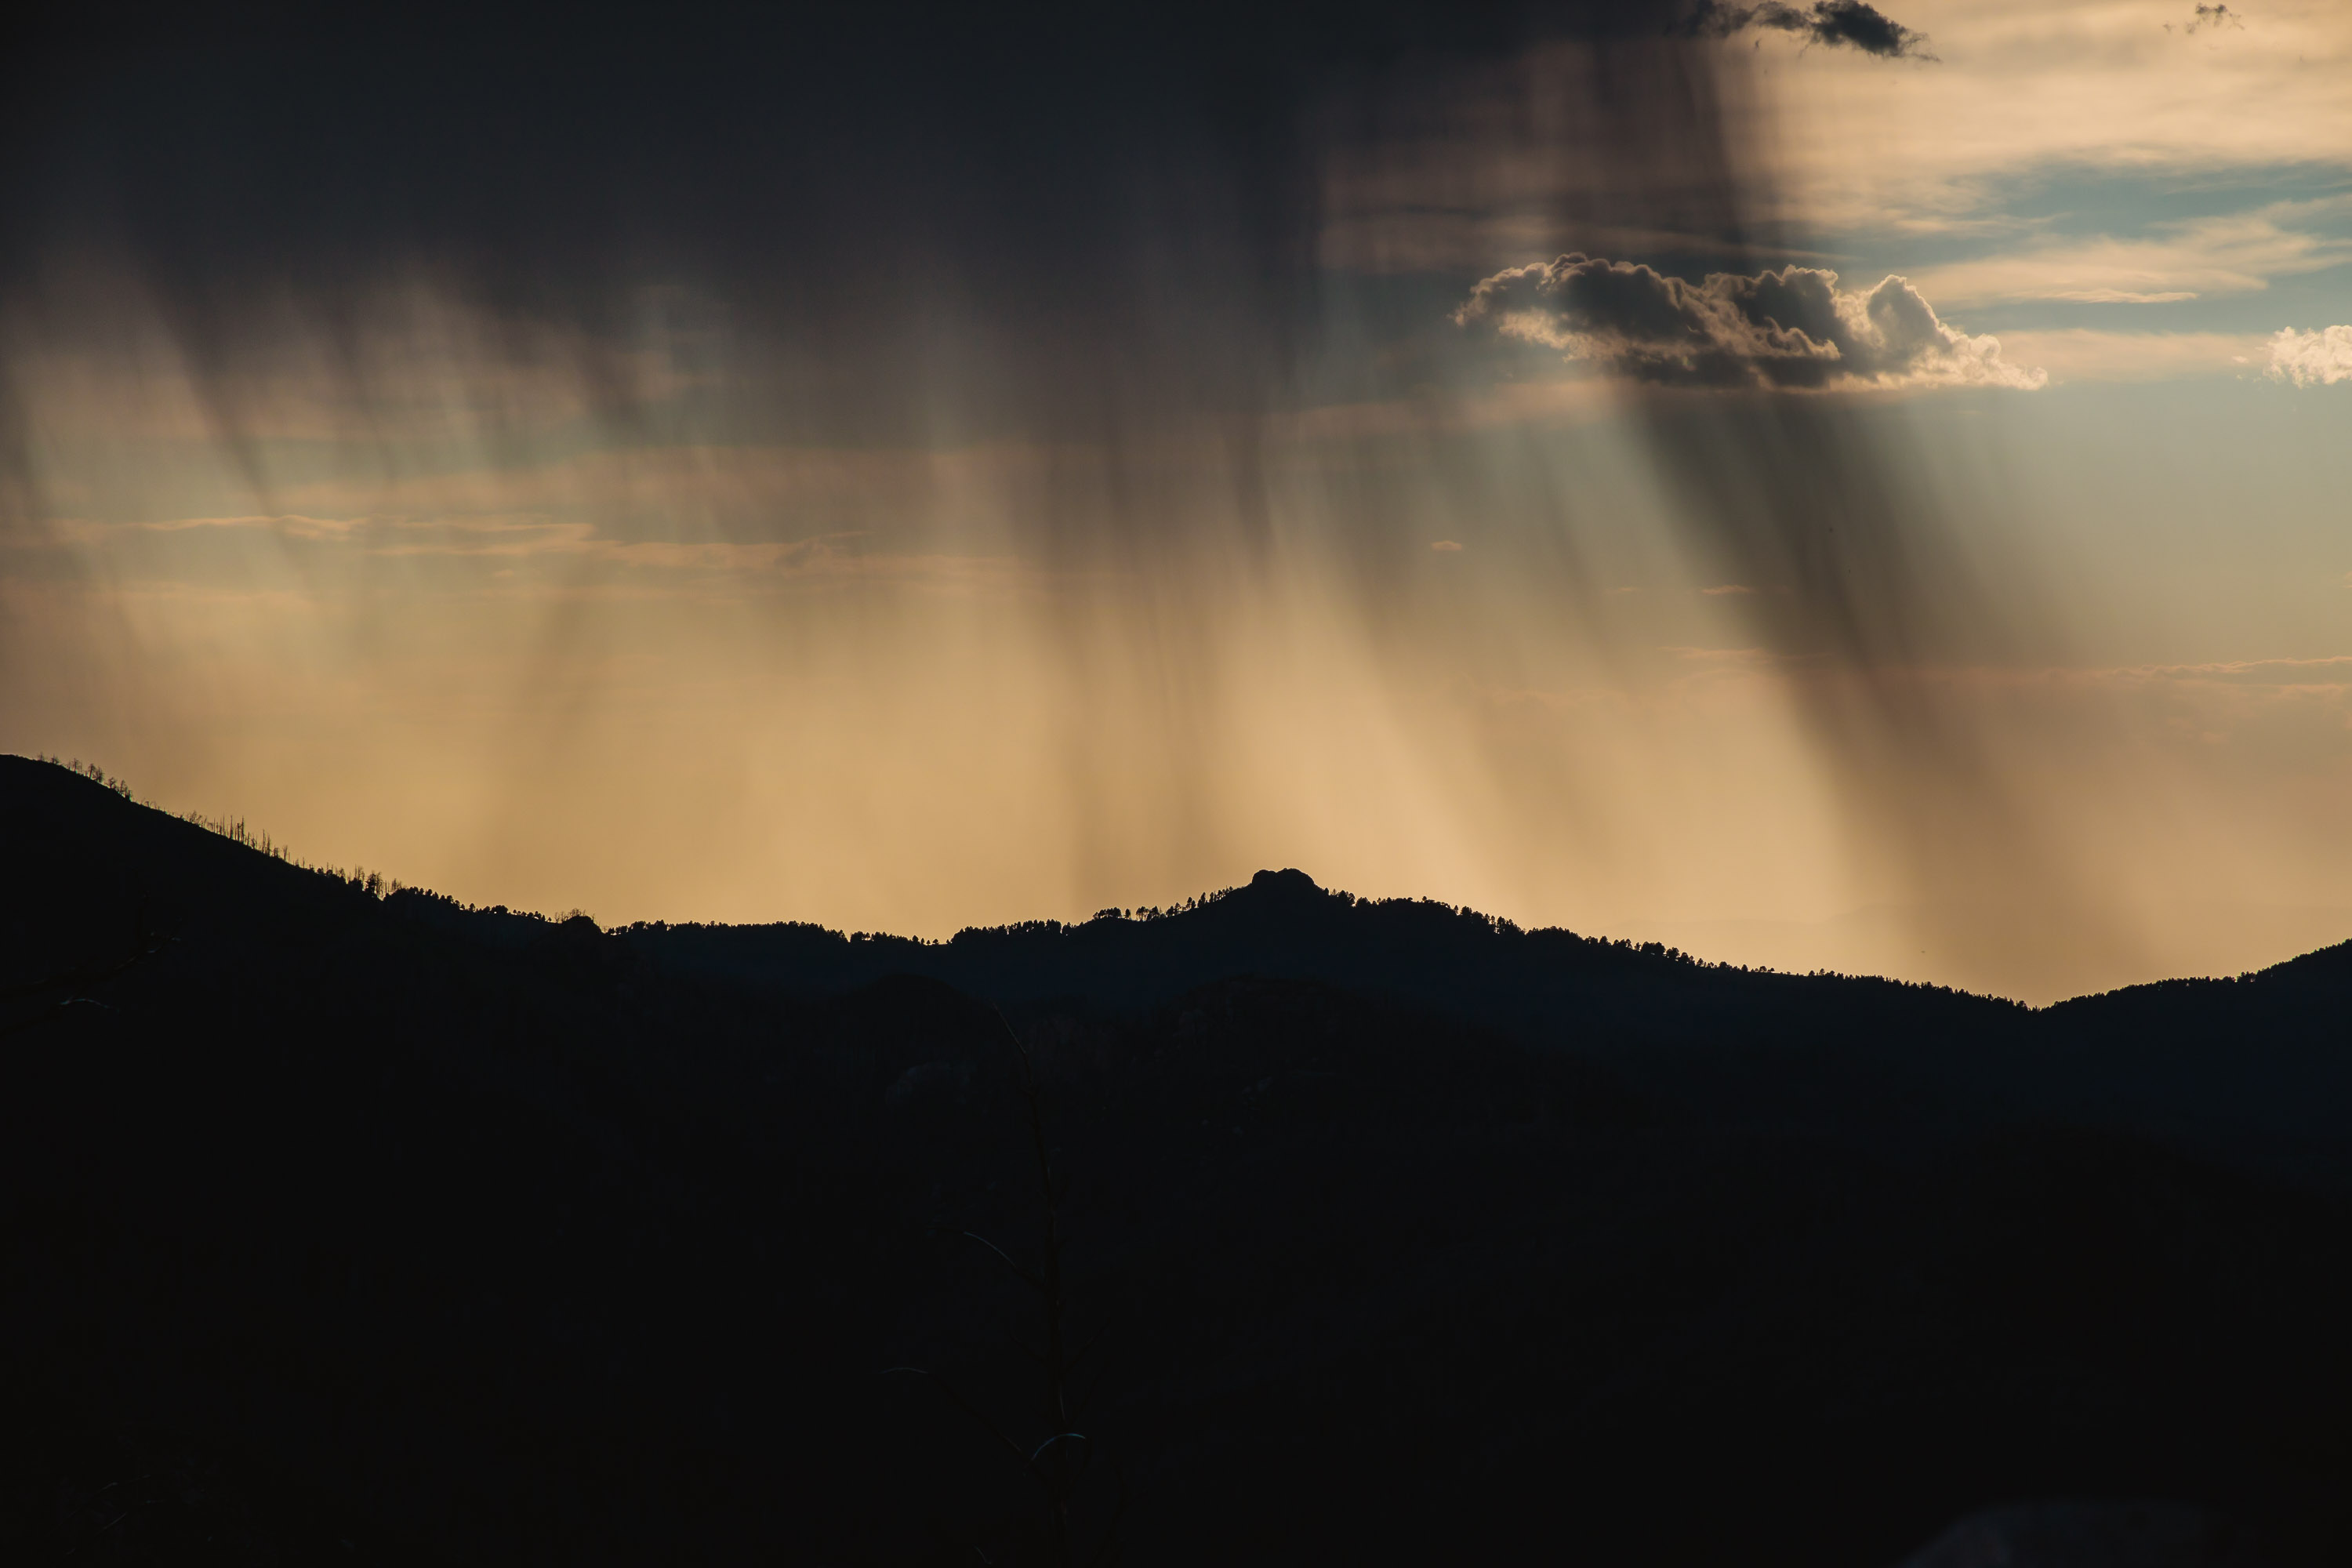 Ruidoso - New Mexico - Virga Over the Mountains